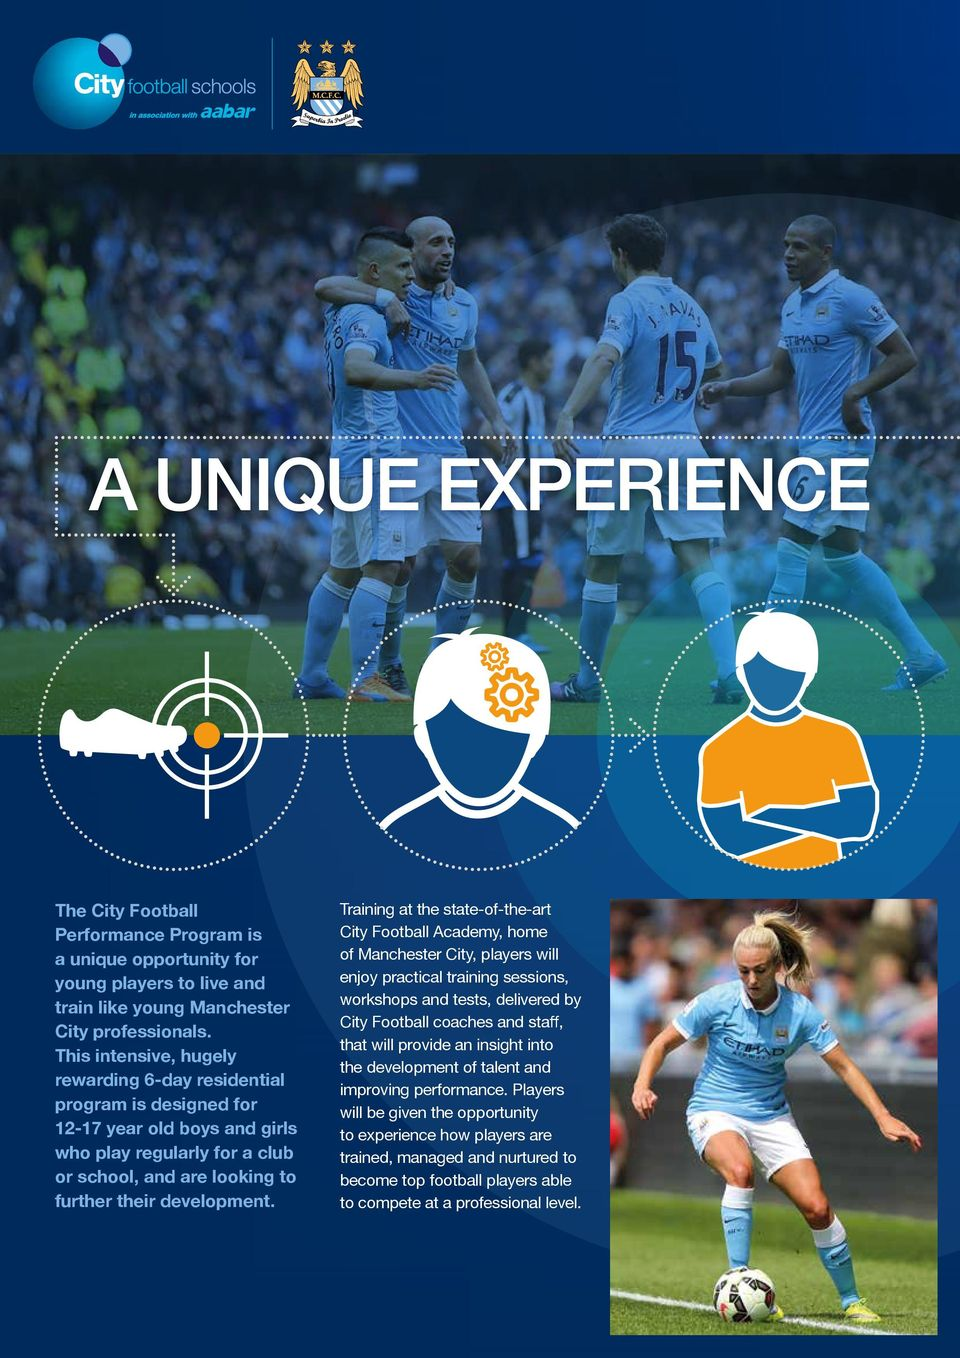 Training at the state-of-the-art City Football Academy, home of Manchester City, players will enjoy practical training sessions, workshops and tests, delivered by City Football coaches and staff,